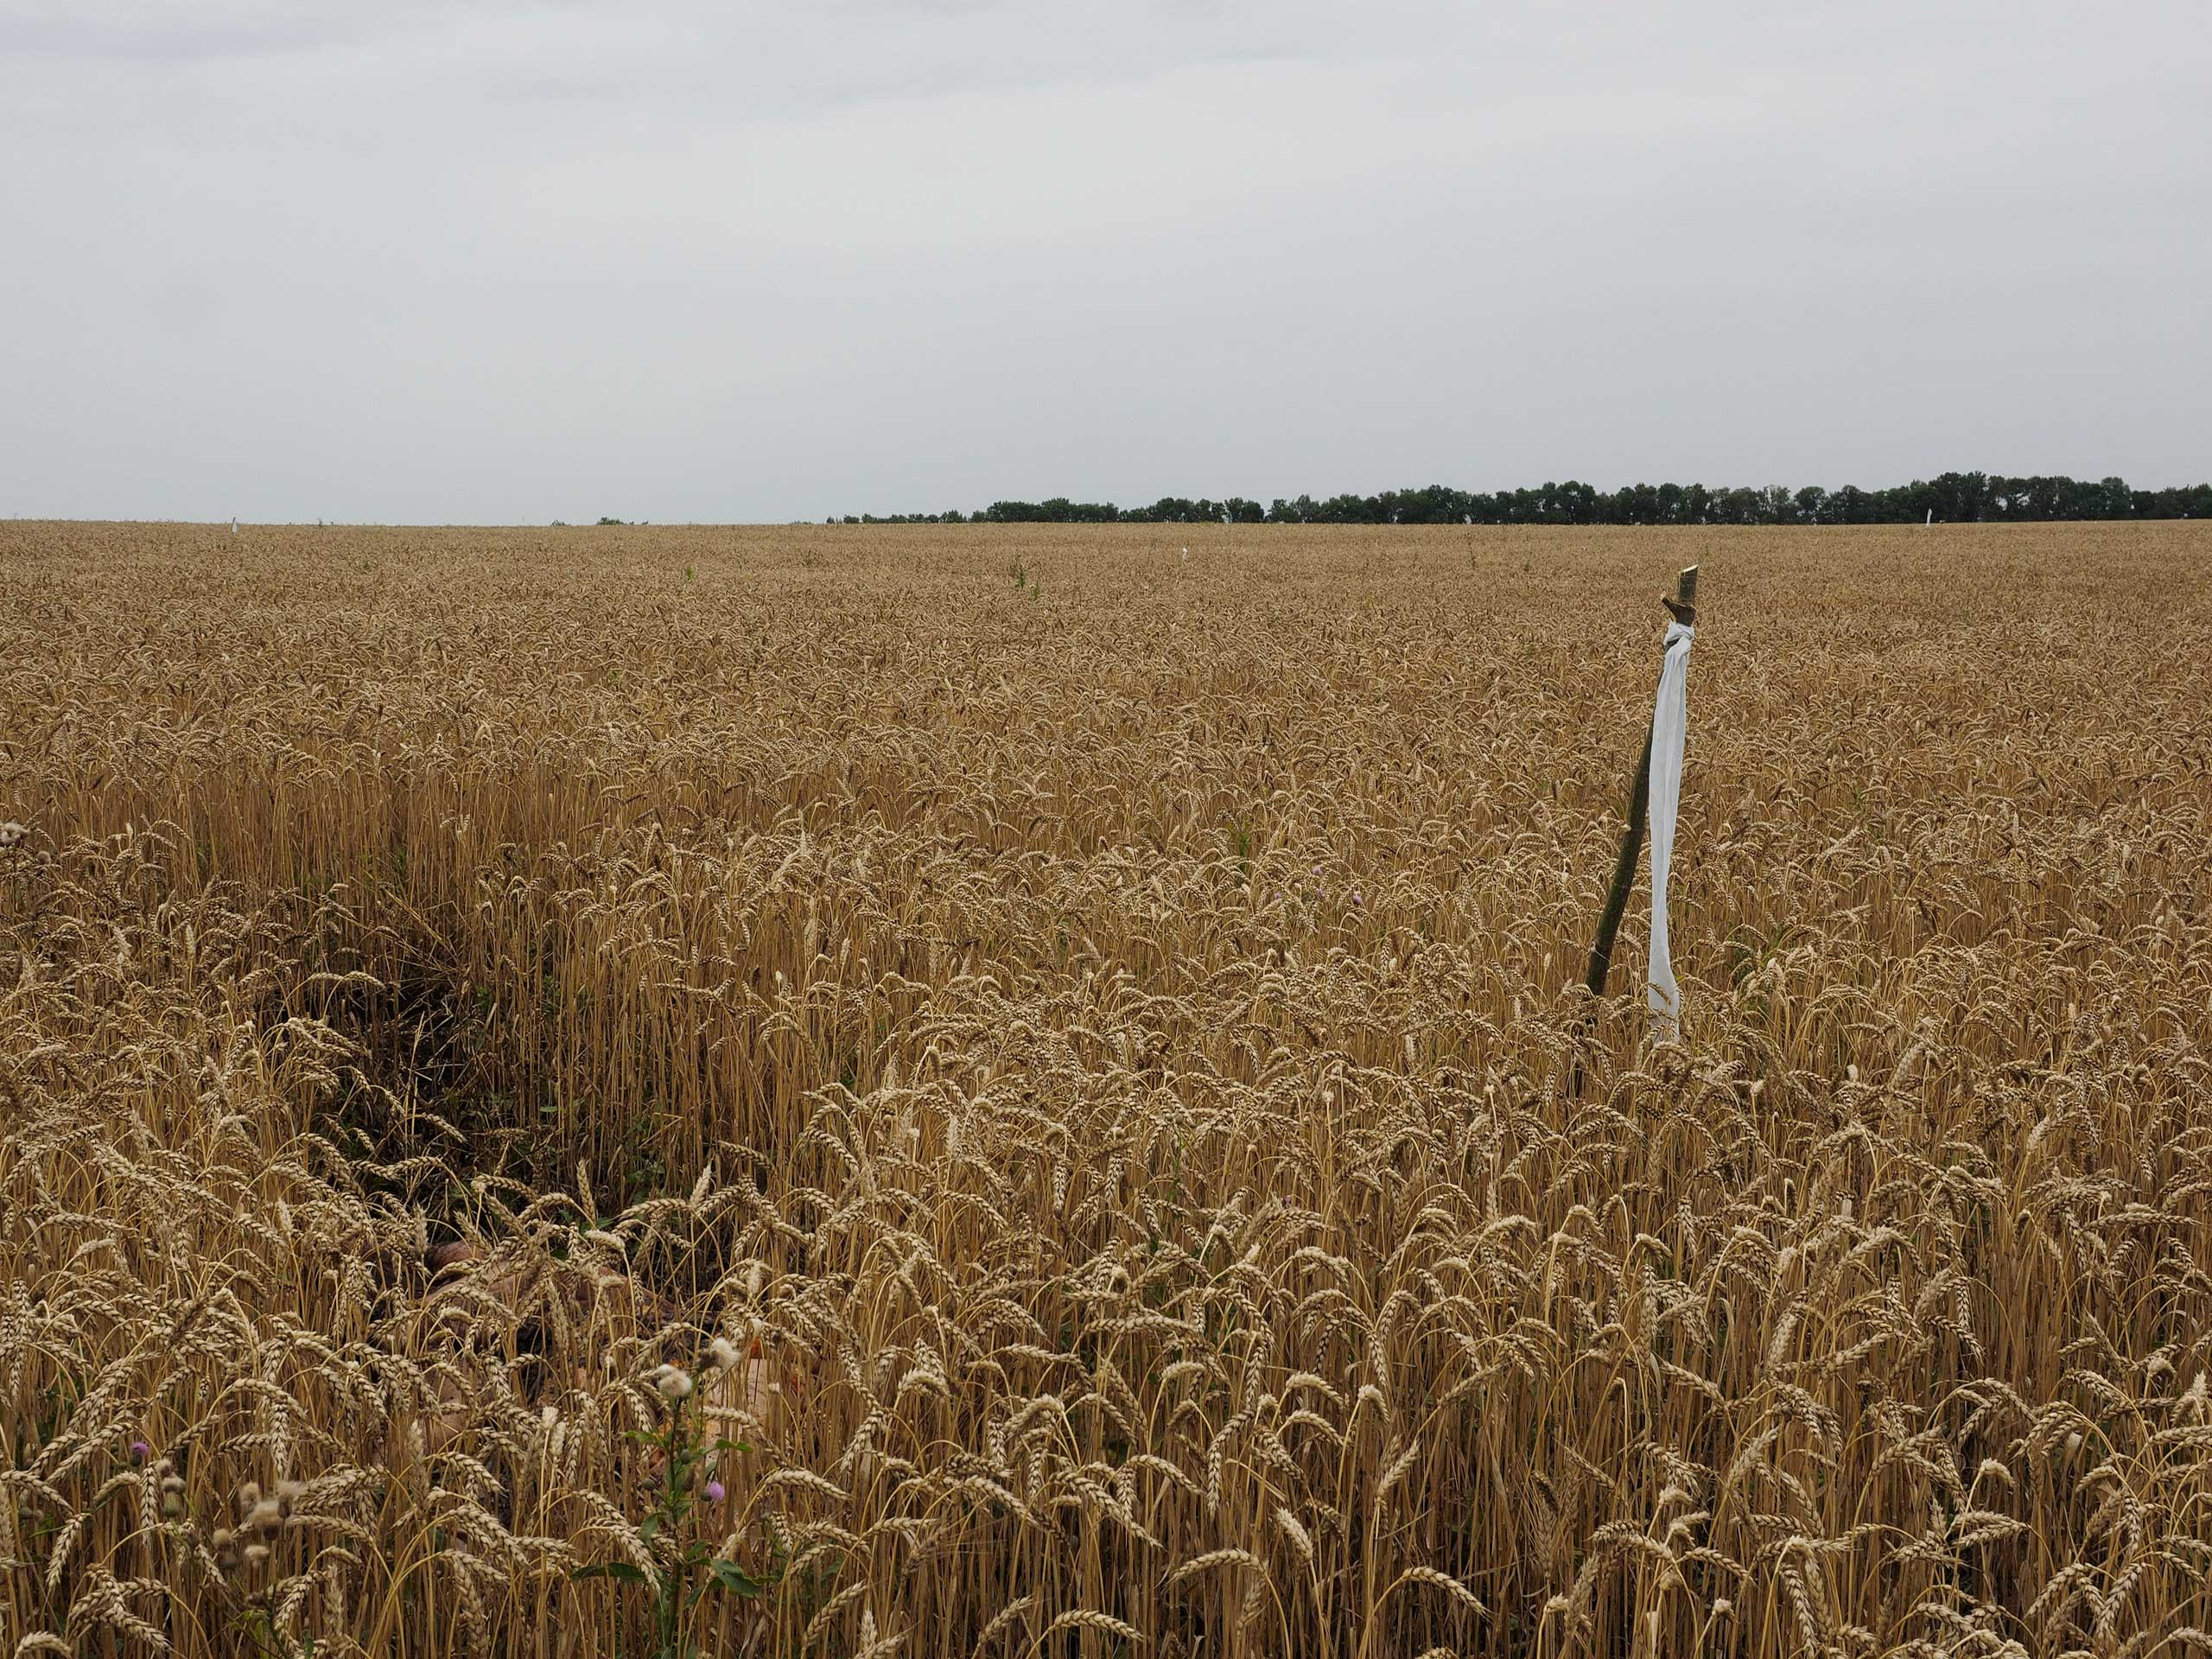 A bare patch in wheat field marks where a victim of Malaysia Airlines flight MH17 fell after the passenger plane was shot down in Torez, Ukraine, July 18, 2014.